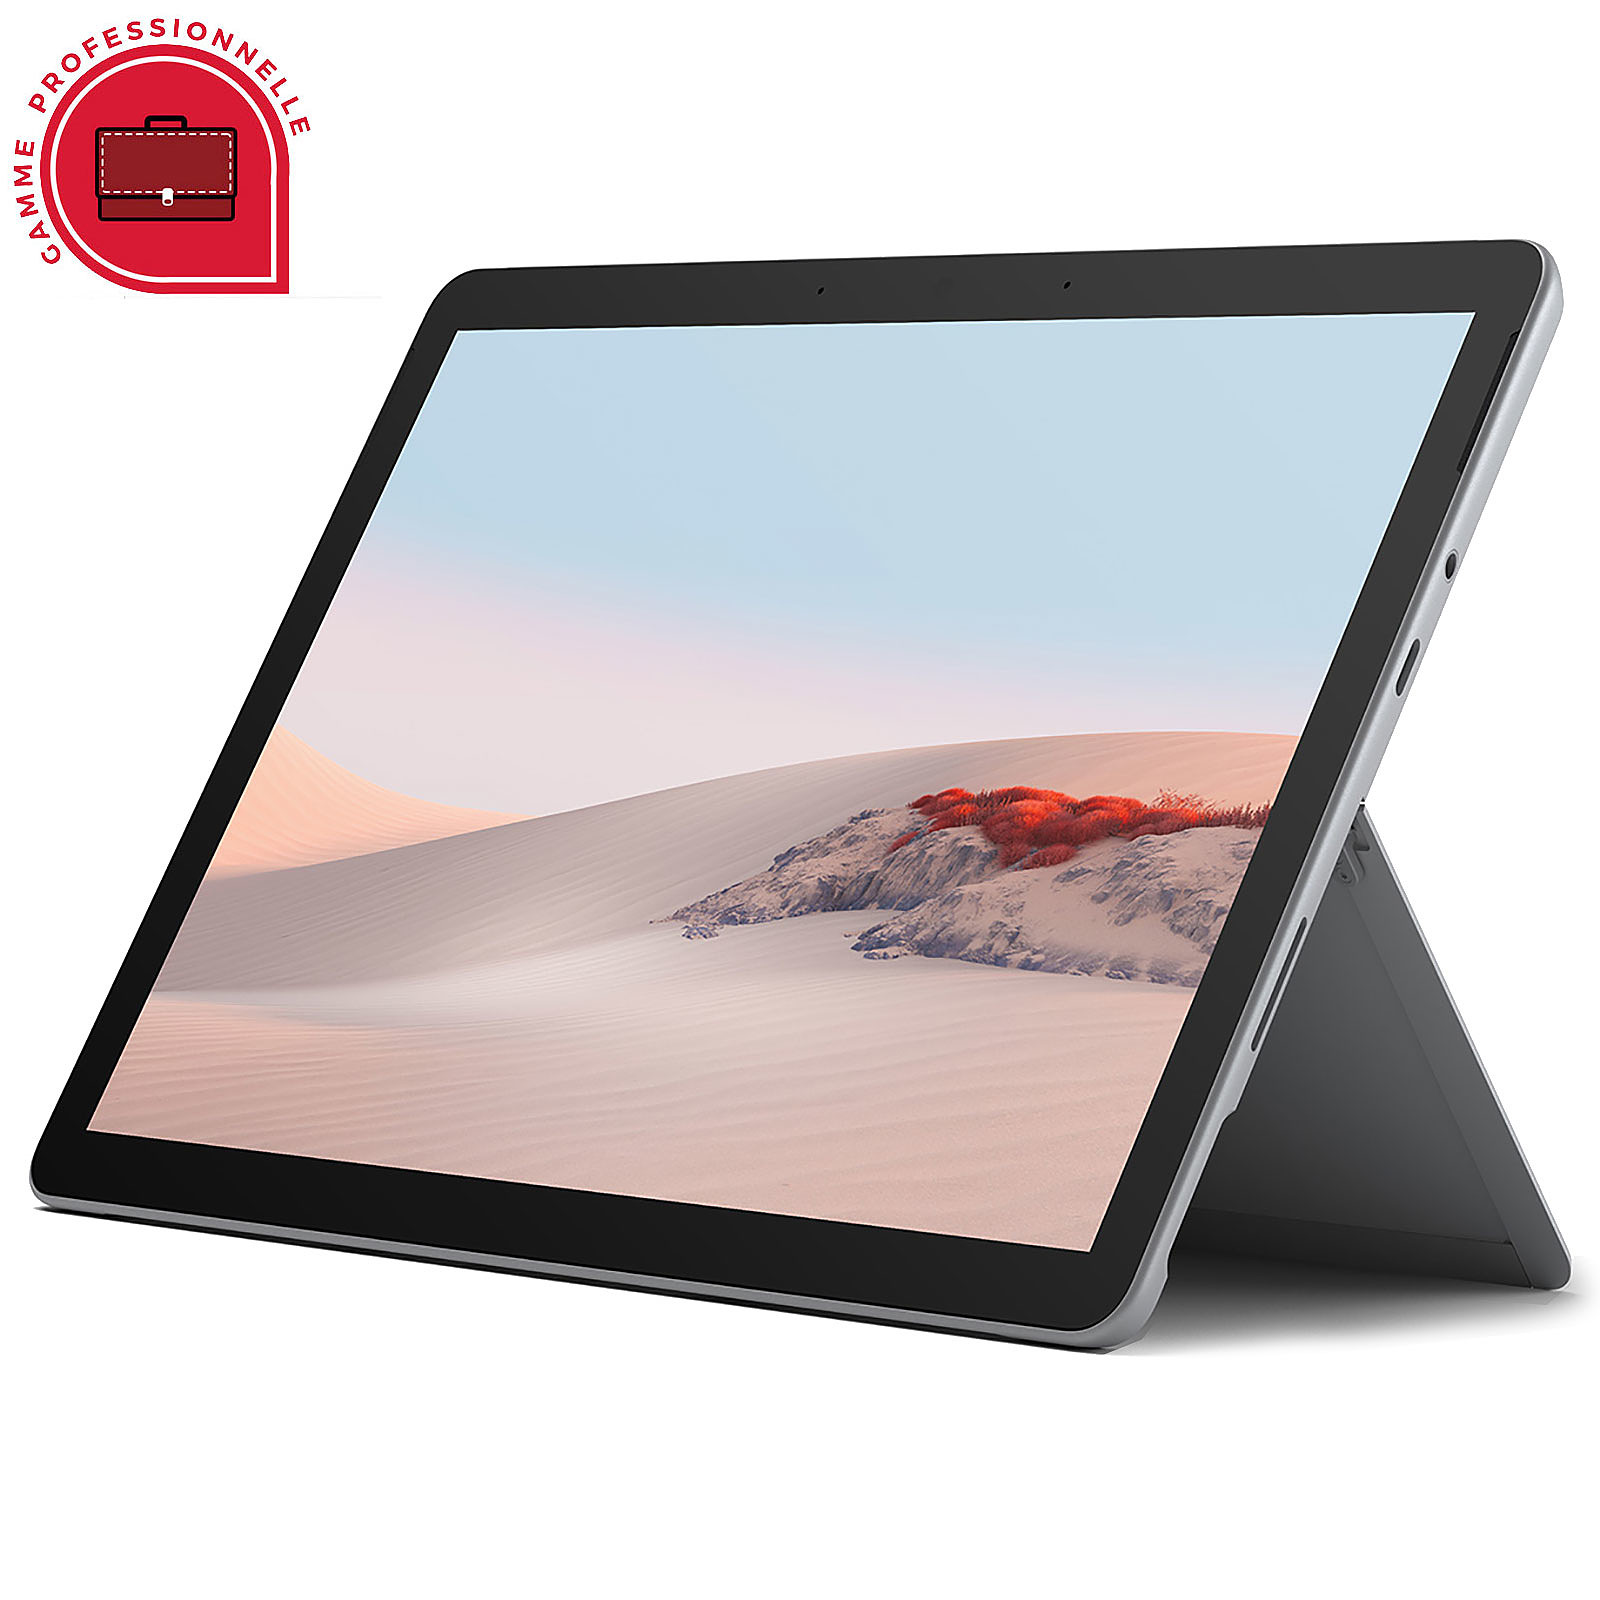 Microsoft Surface Go 2 for Business - 8 Go 256 Go 4G